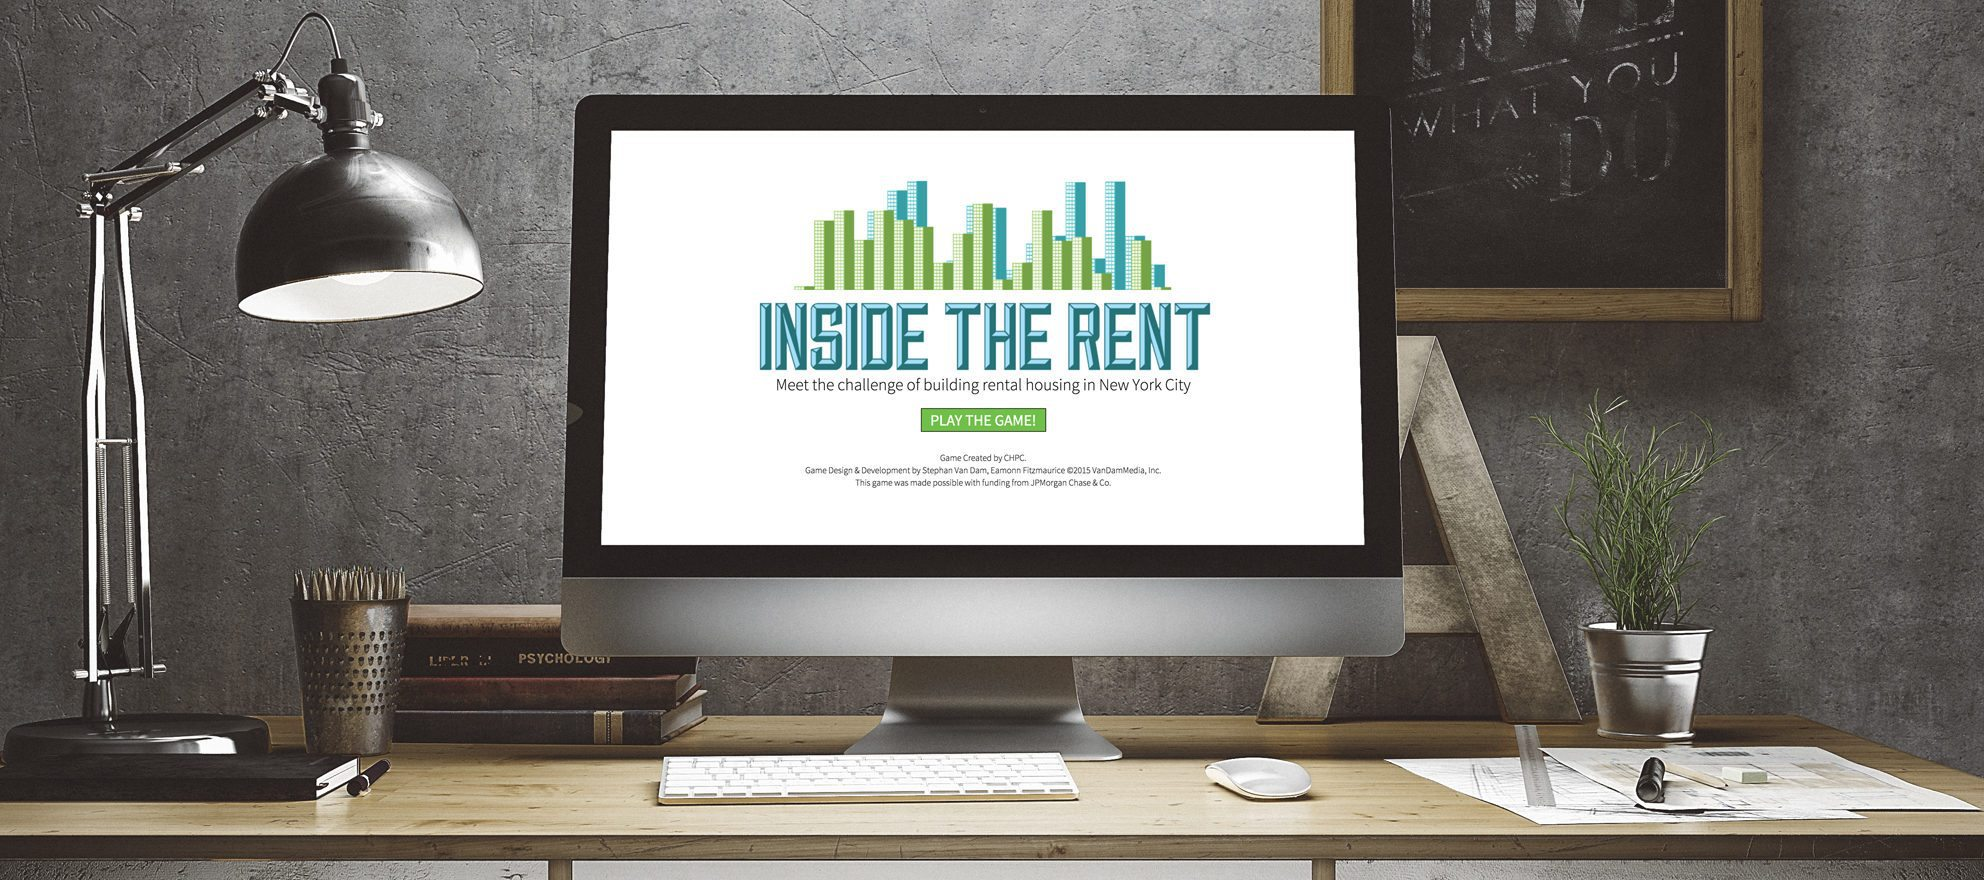 How to teach your clients about rising housing costs in a creative way